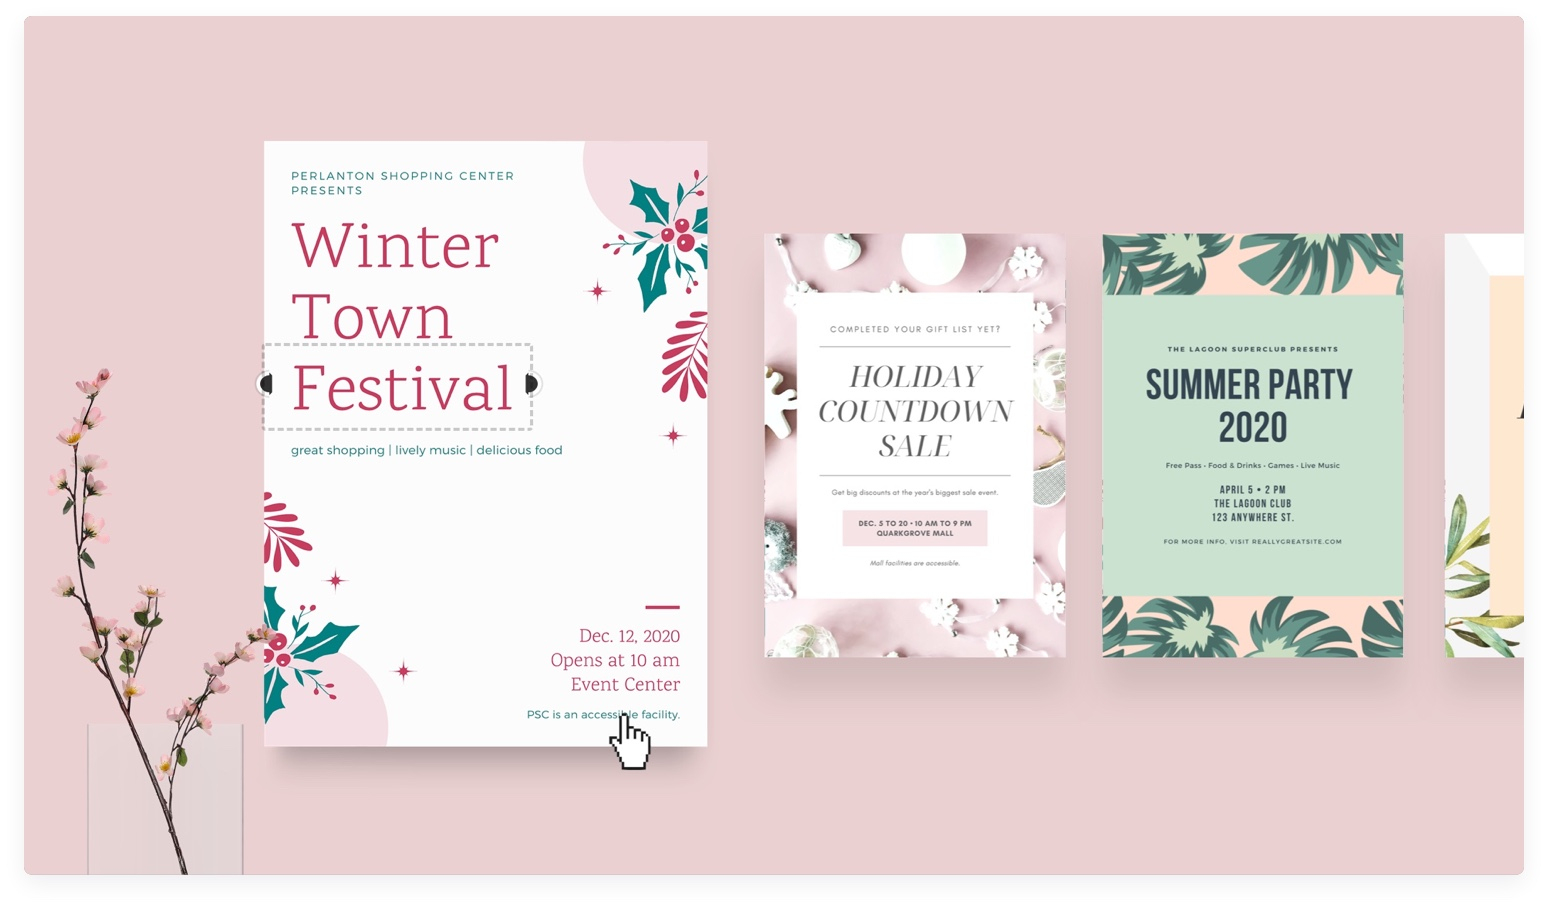 Free Online Flyer Maker: Design Custom Flyers With Canva - About Canva - Create Flyers Online Free Printable